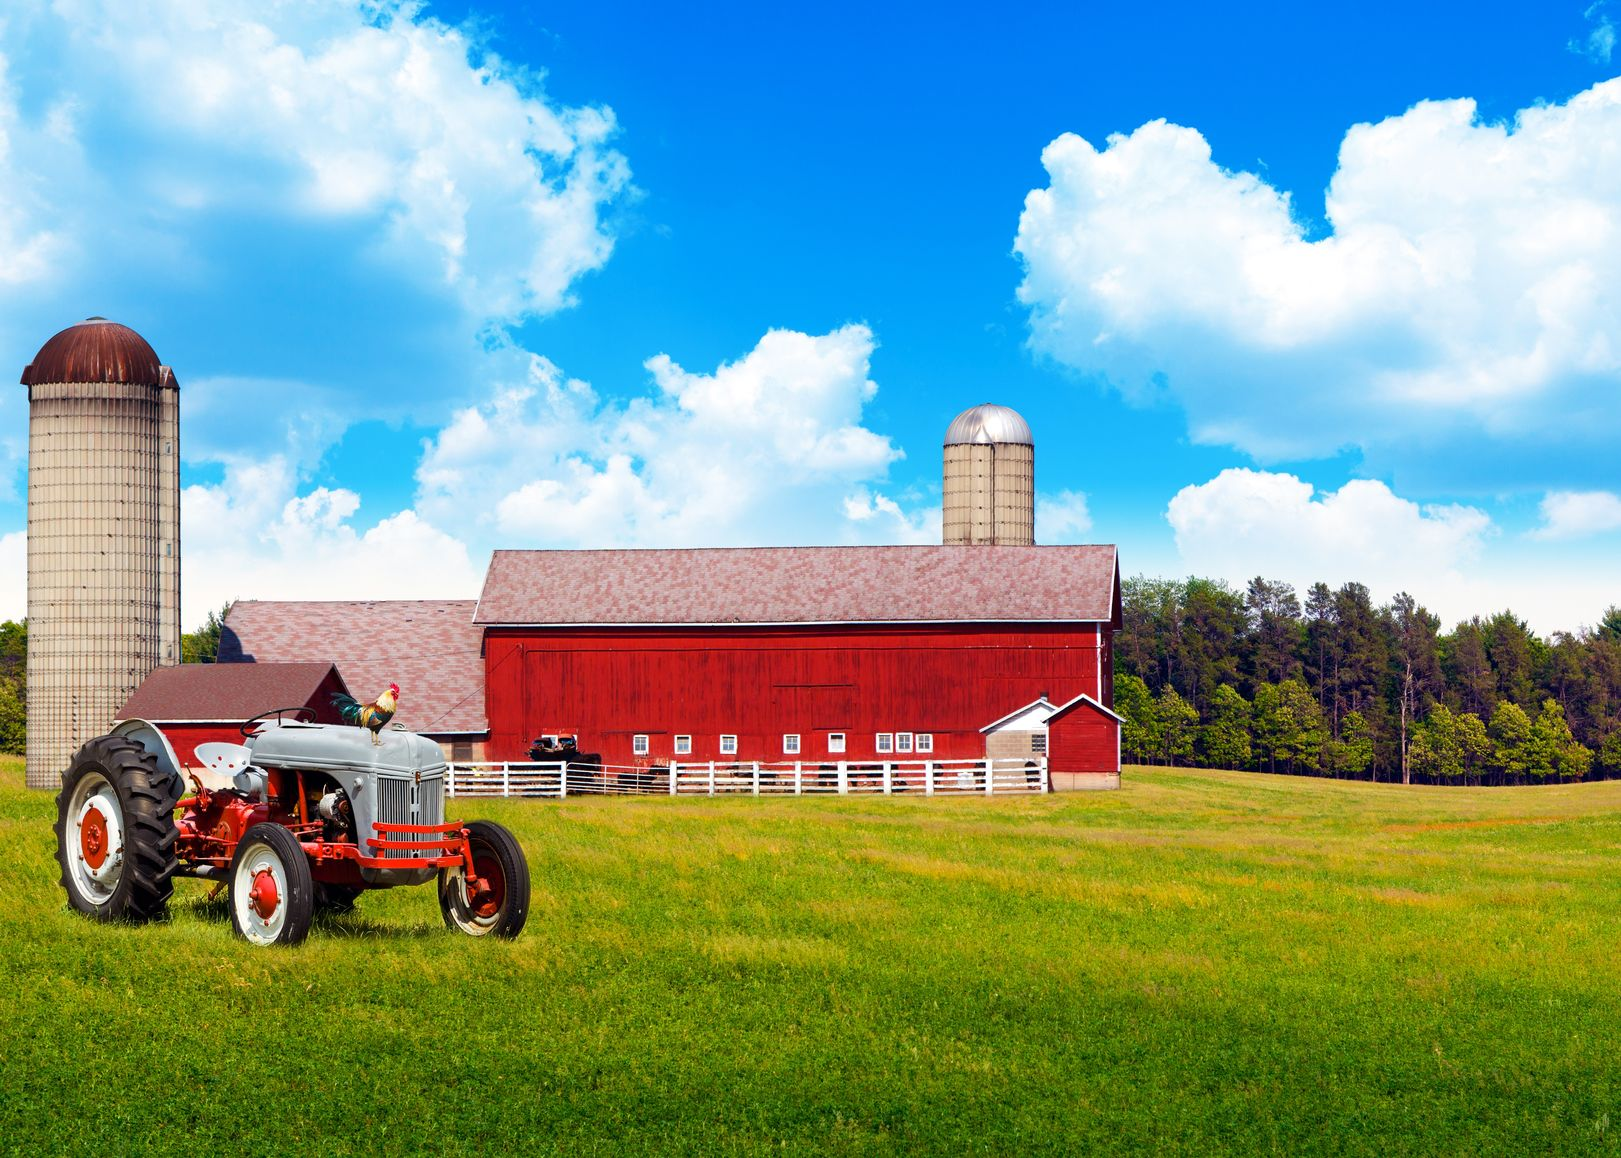 St Joseph Missouri Farm & Ranch Insurance